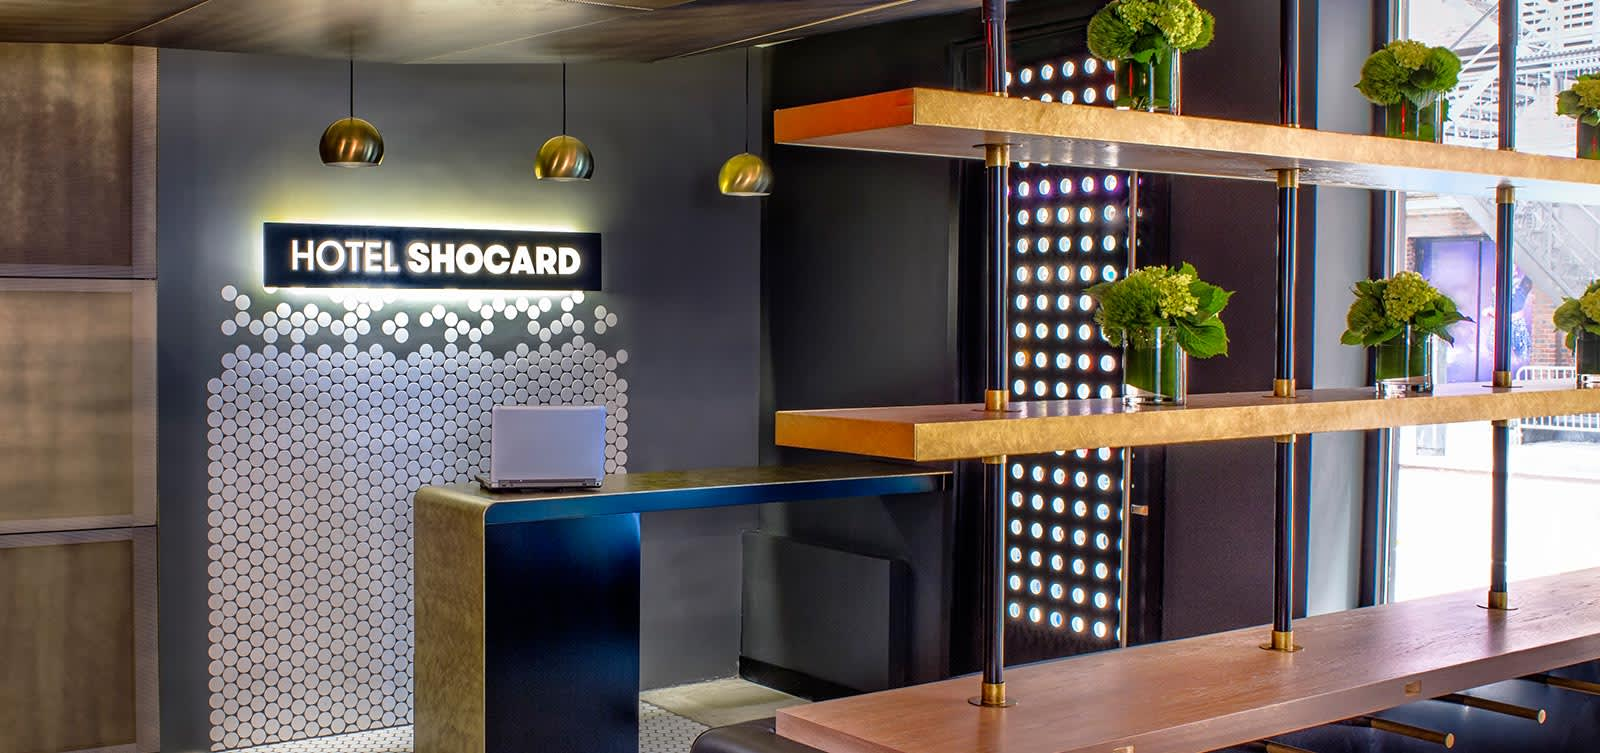 Hotel Shocard, New York